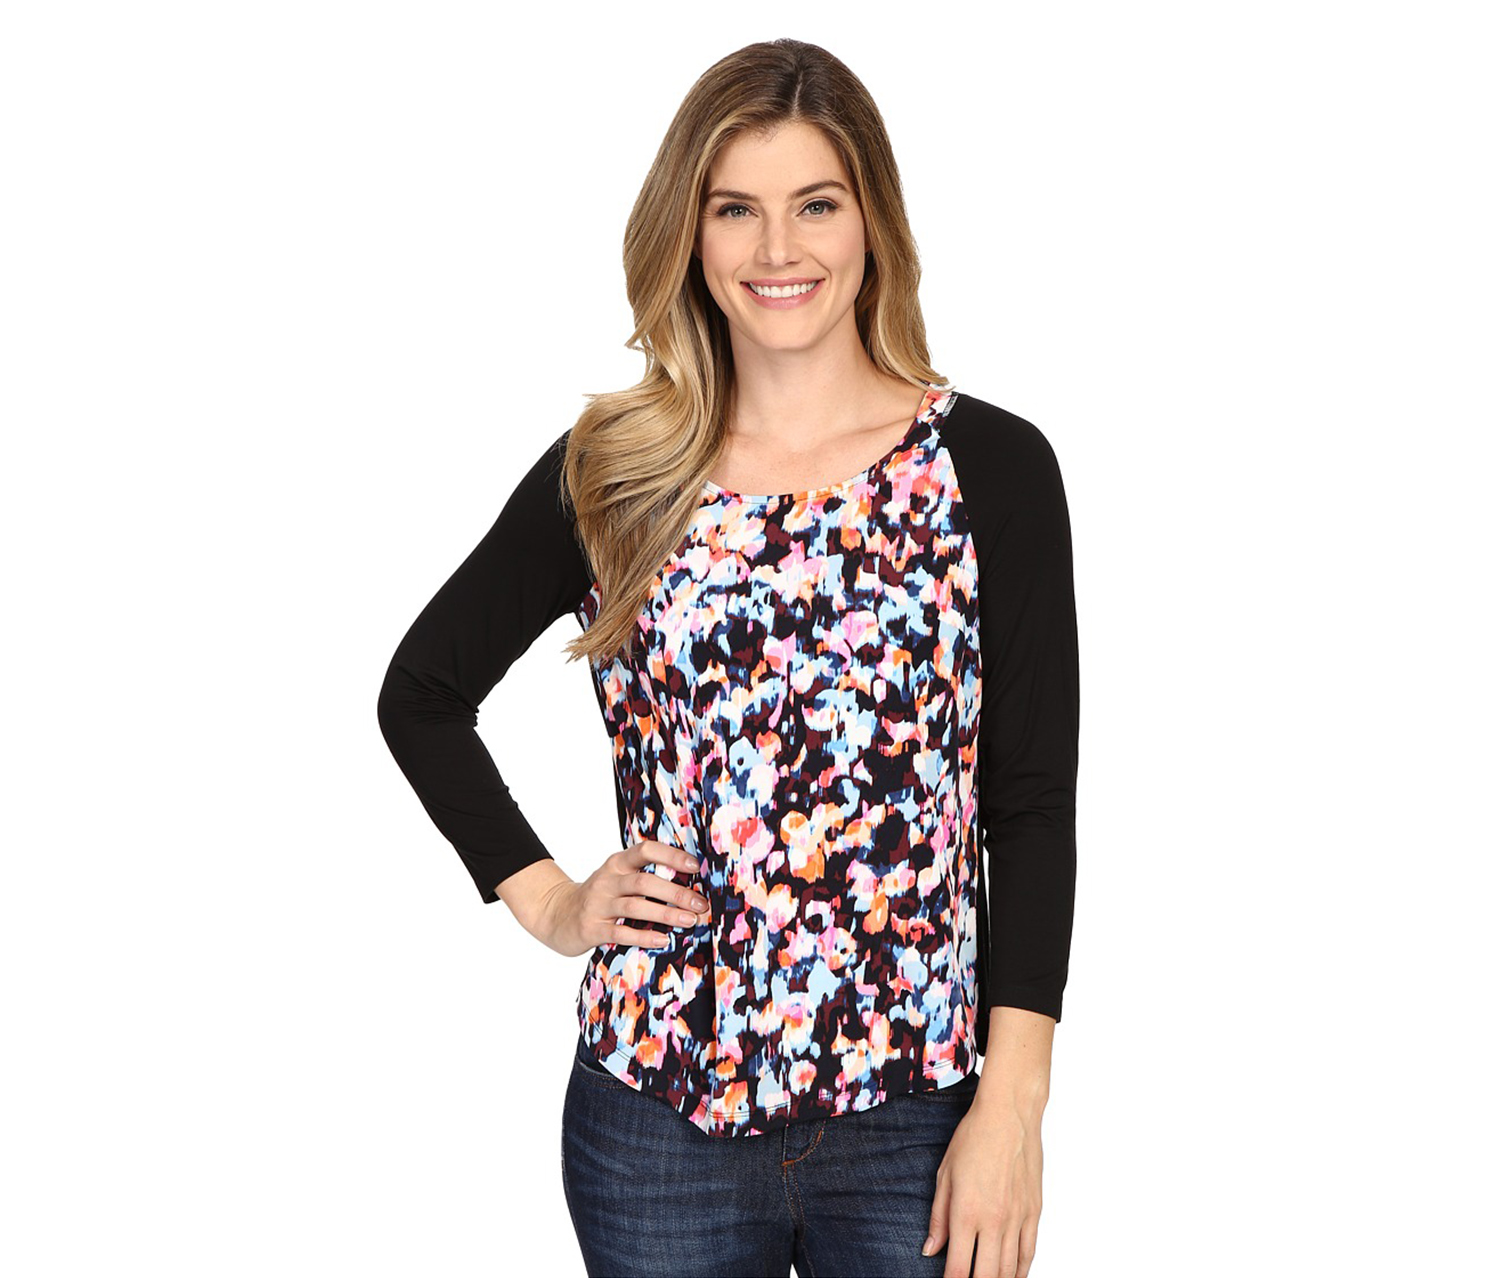 NYDJ Women's Print Front Mixed Media Top, Black/Blue/Pink